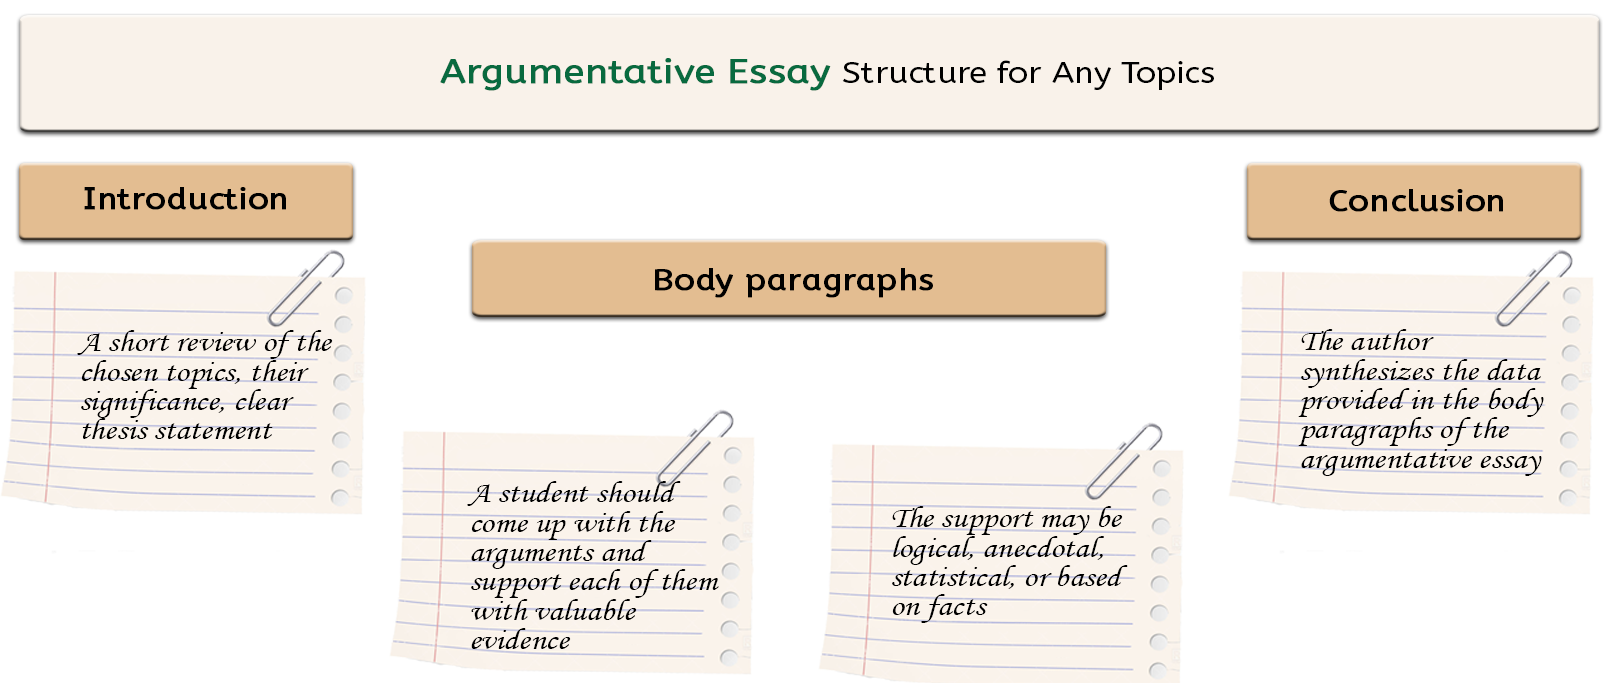 argumentative essay topic daily homework essay Persuasive essay assignment sheet - free download as word doc (doc / docx), pdf file an example of a persuasive essay topic would be: you will be graded on both your participation in daily activities and your completion of persuasive essay.